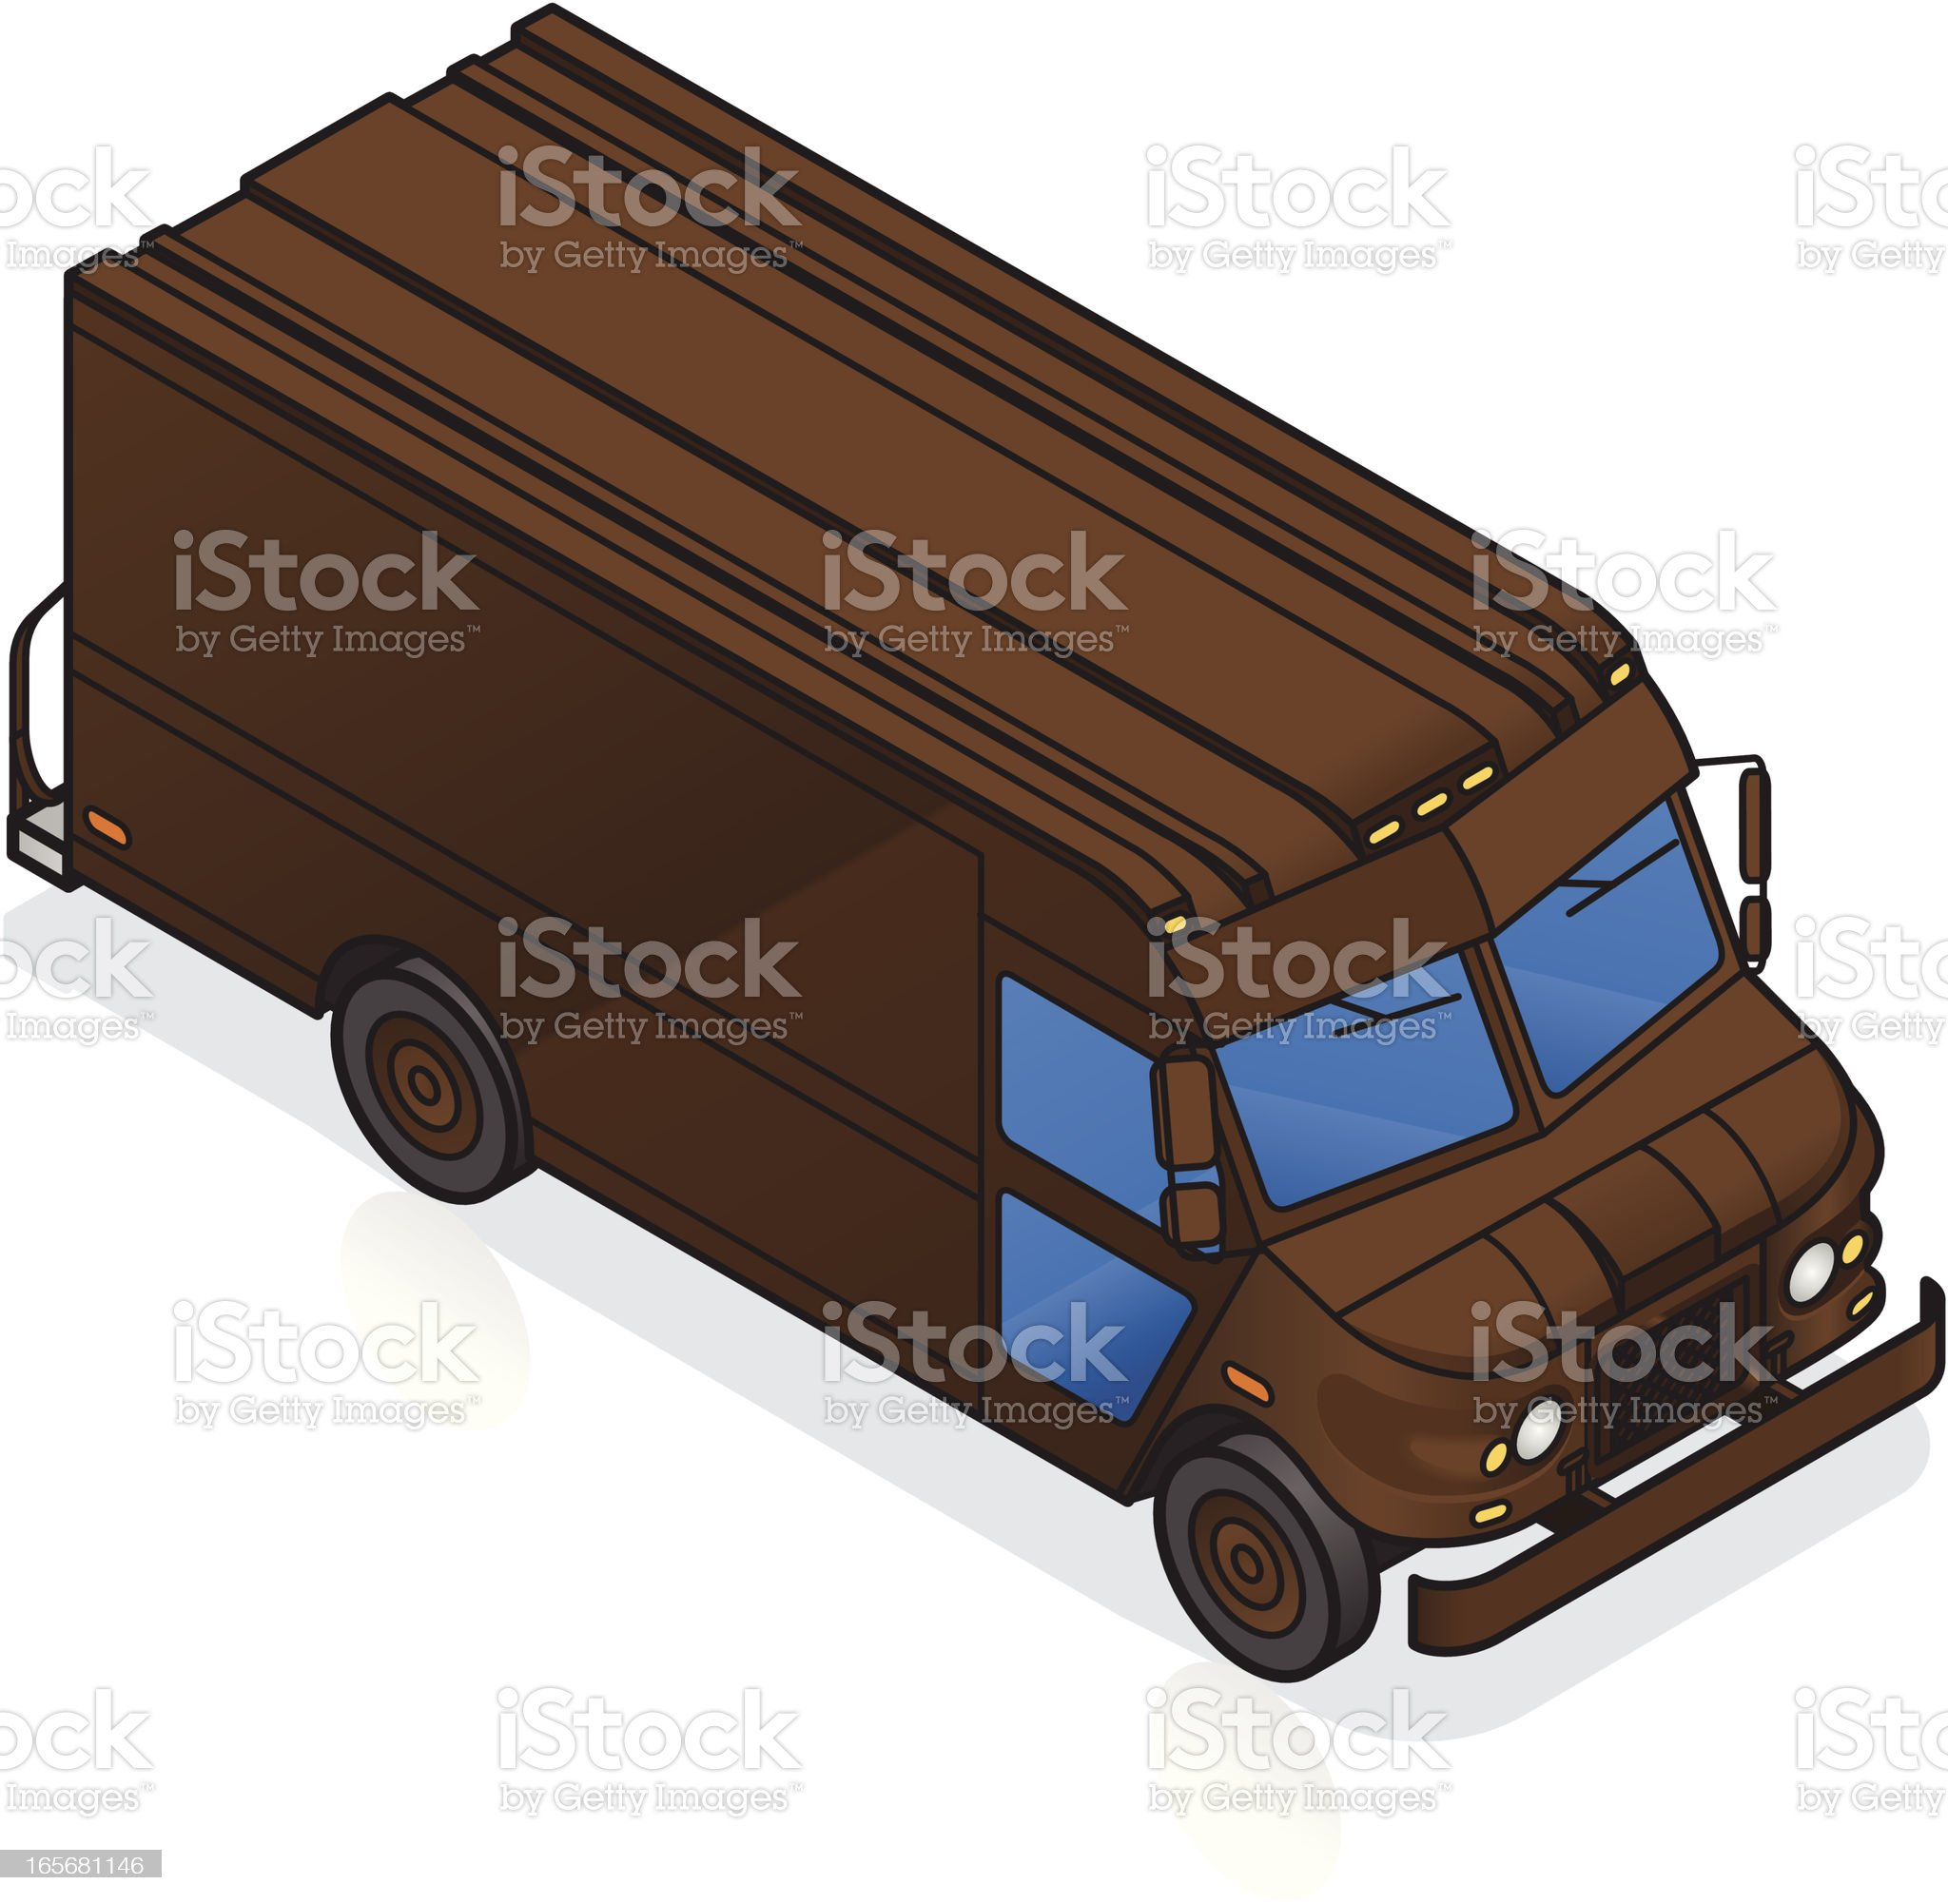 Package Delivery Truck Isometric royalty-free stock vector art